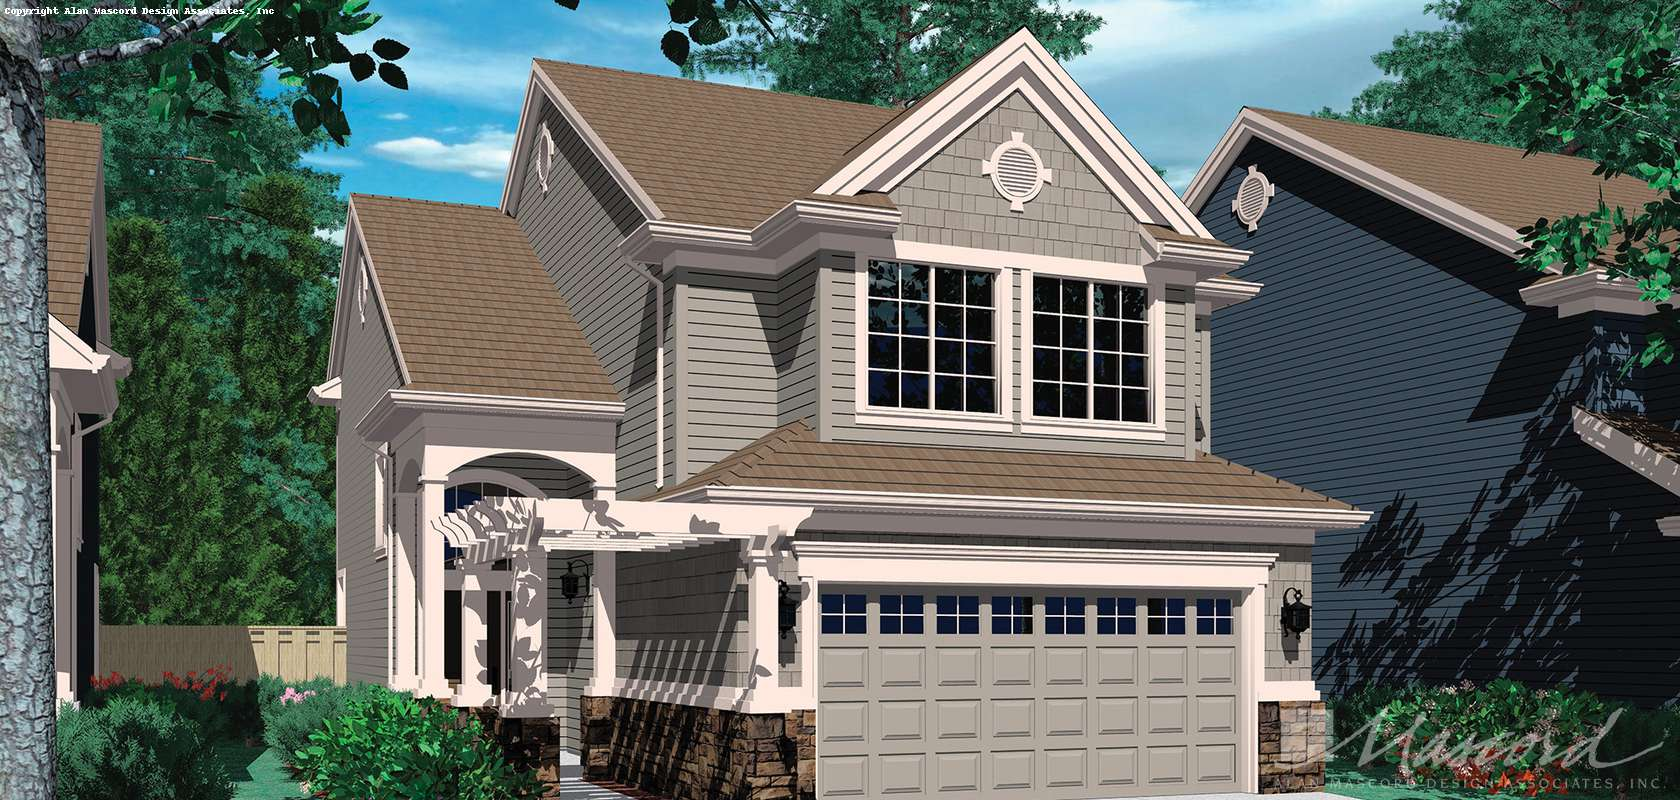 Craftsman House Plan 2198 The Moraine: 1919 Sqft, 4 Beds ... on 1910 house plans, sectional house plans, 1912 house plans, 4 bedroom house plans, government house plans, 1900 house plans, united states house plans, craftsman style house plans,